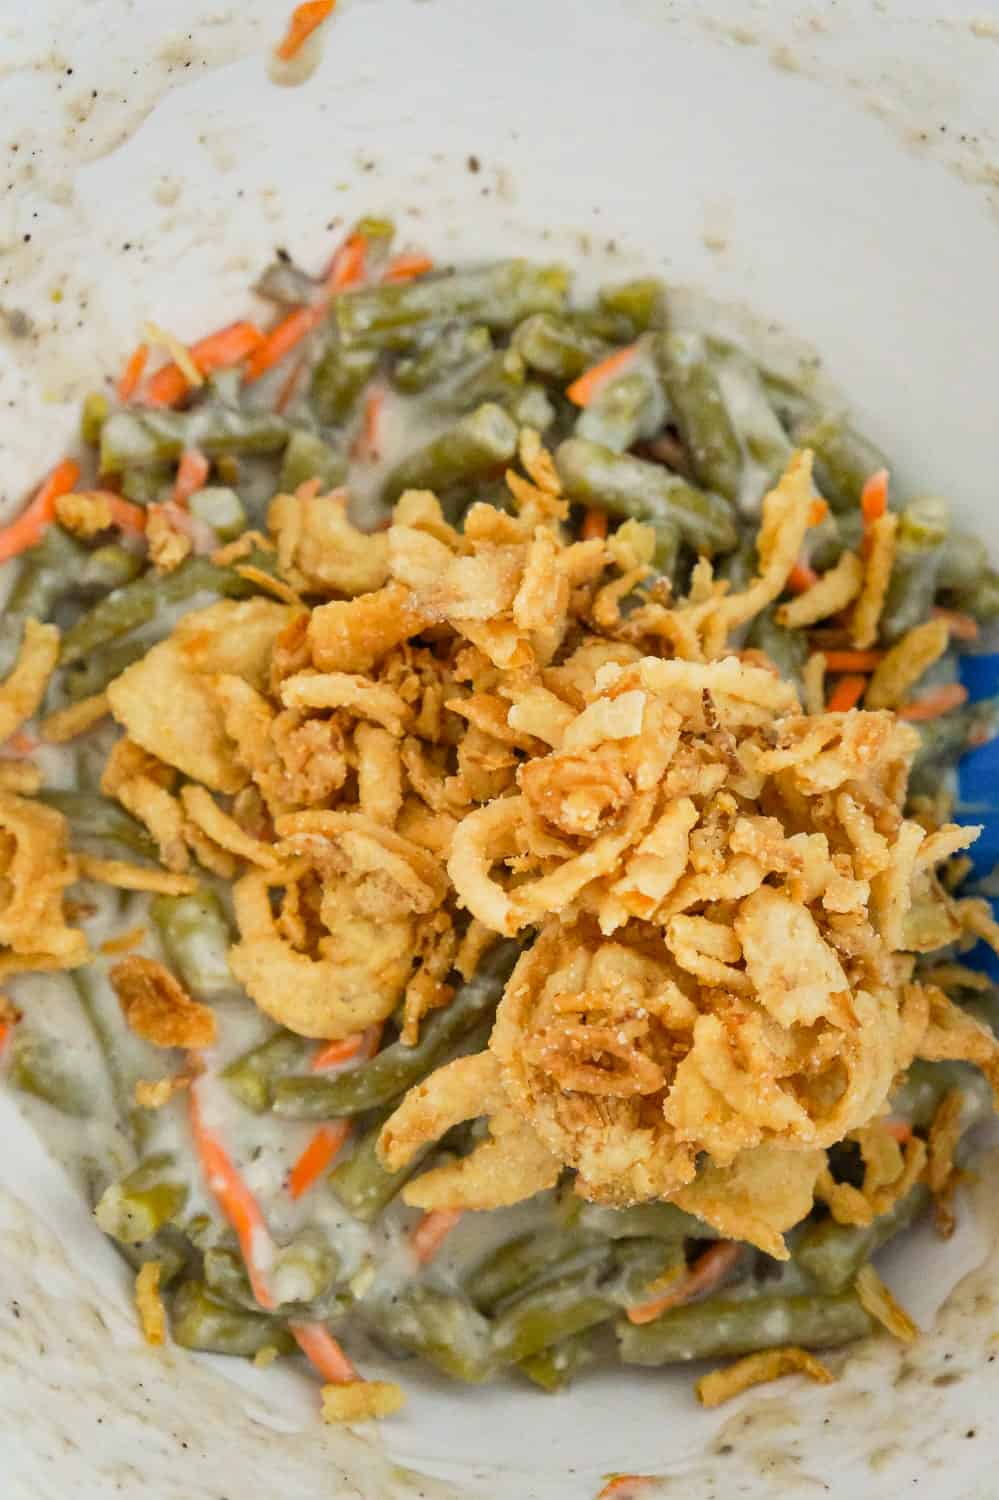 French's fried onions on top of green bean and carrot mixture in a mixing bowl